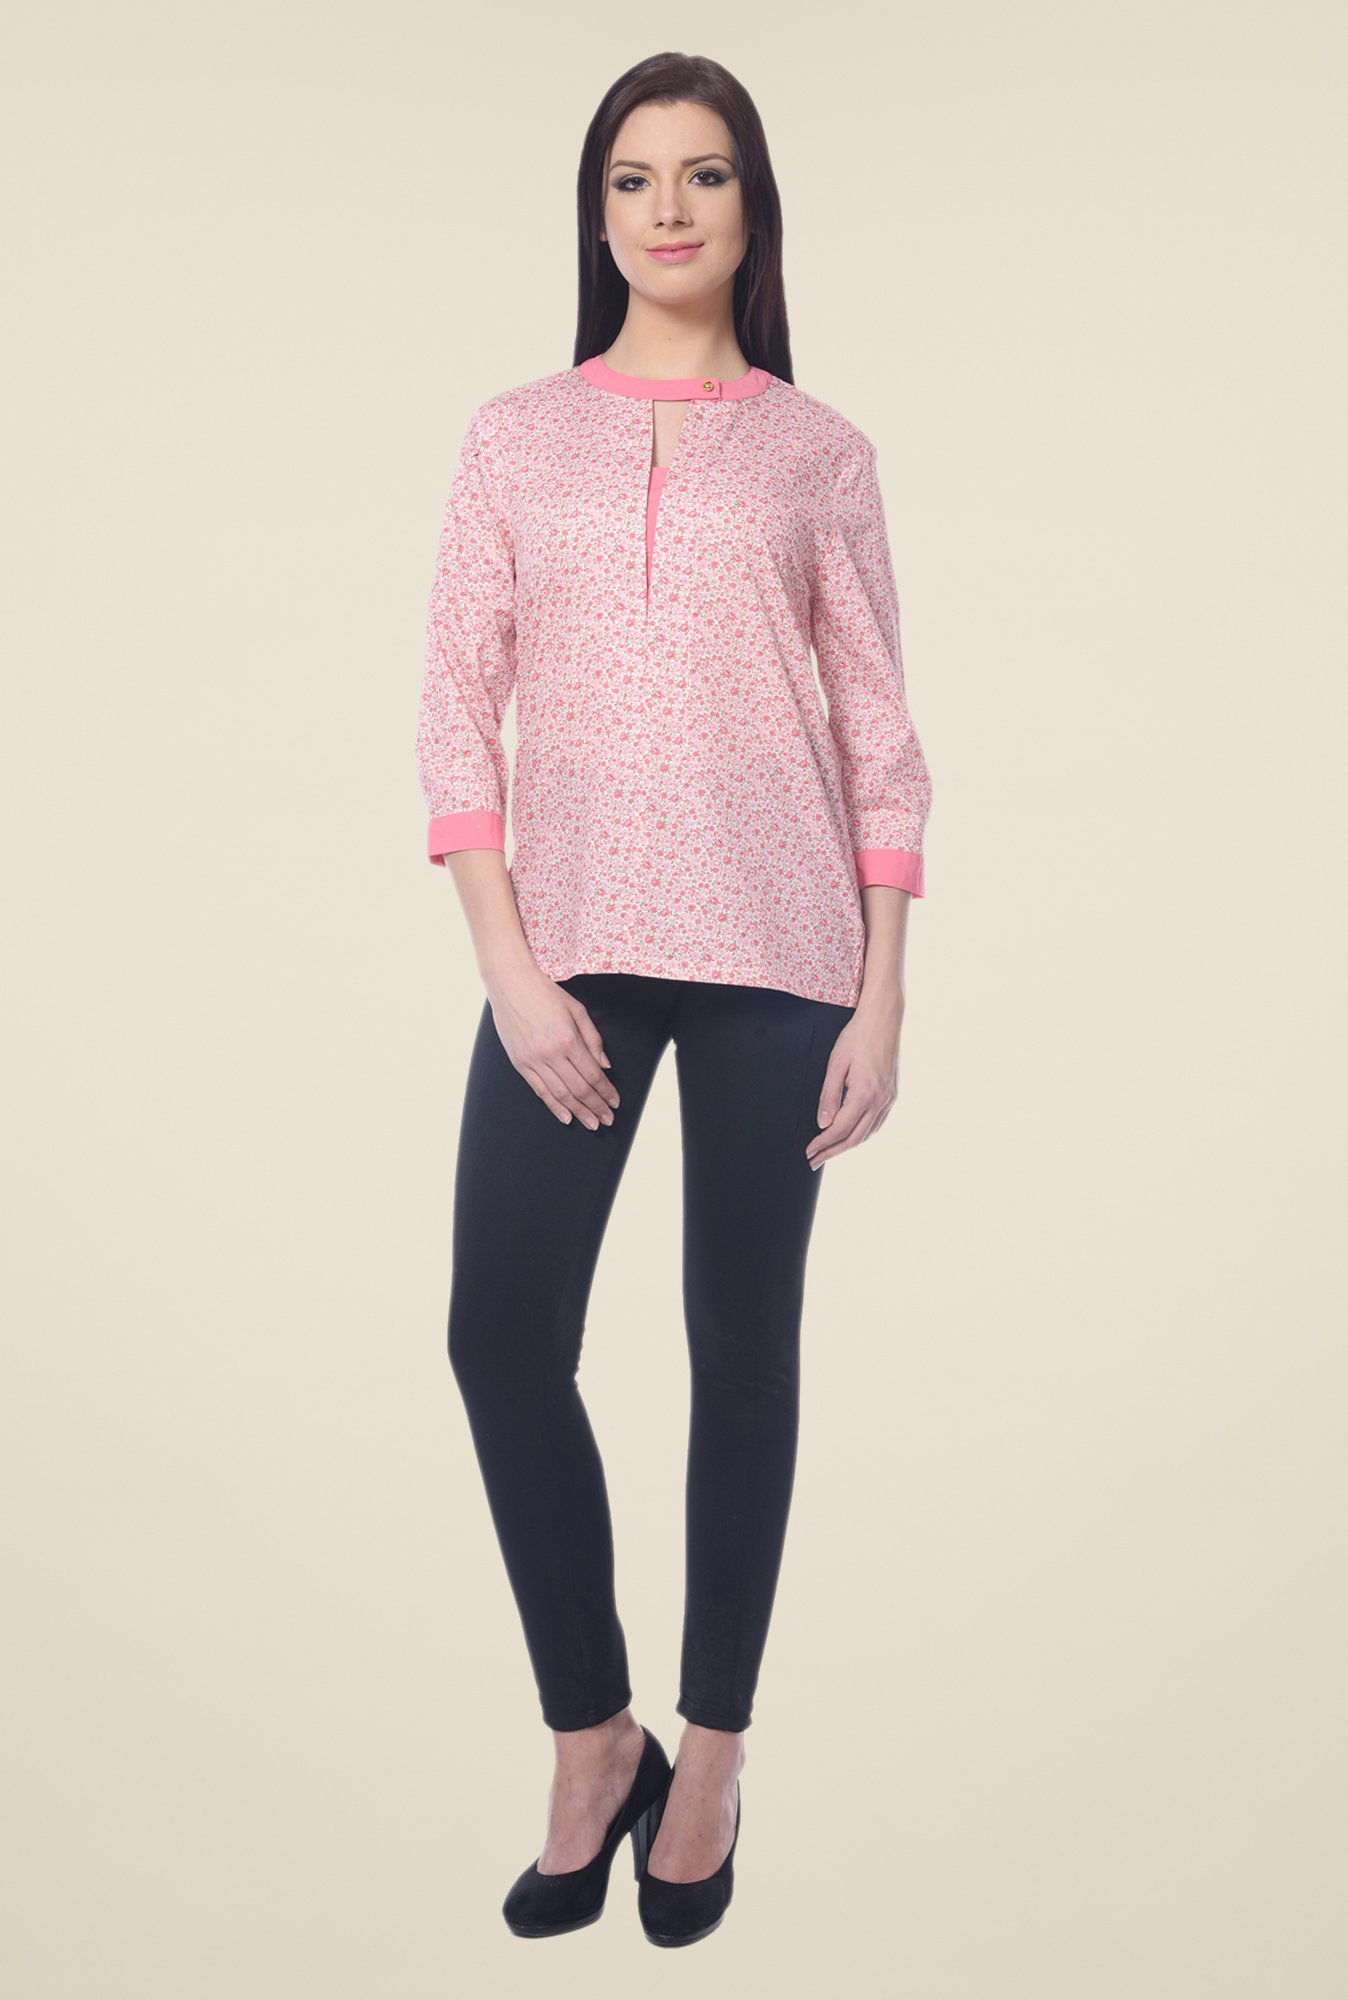 Forever Fashion Pink Floral Print Top